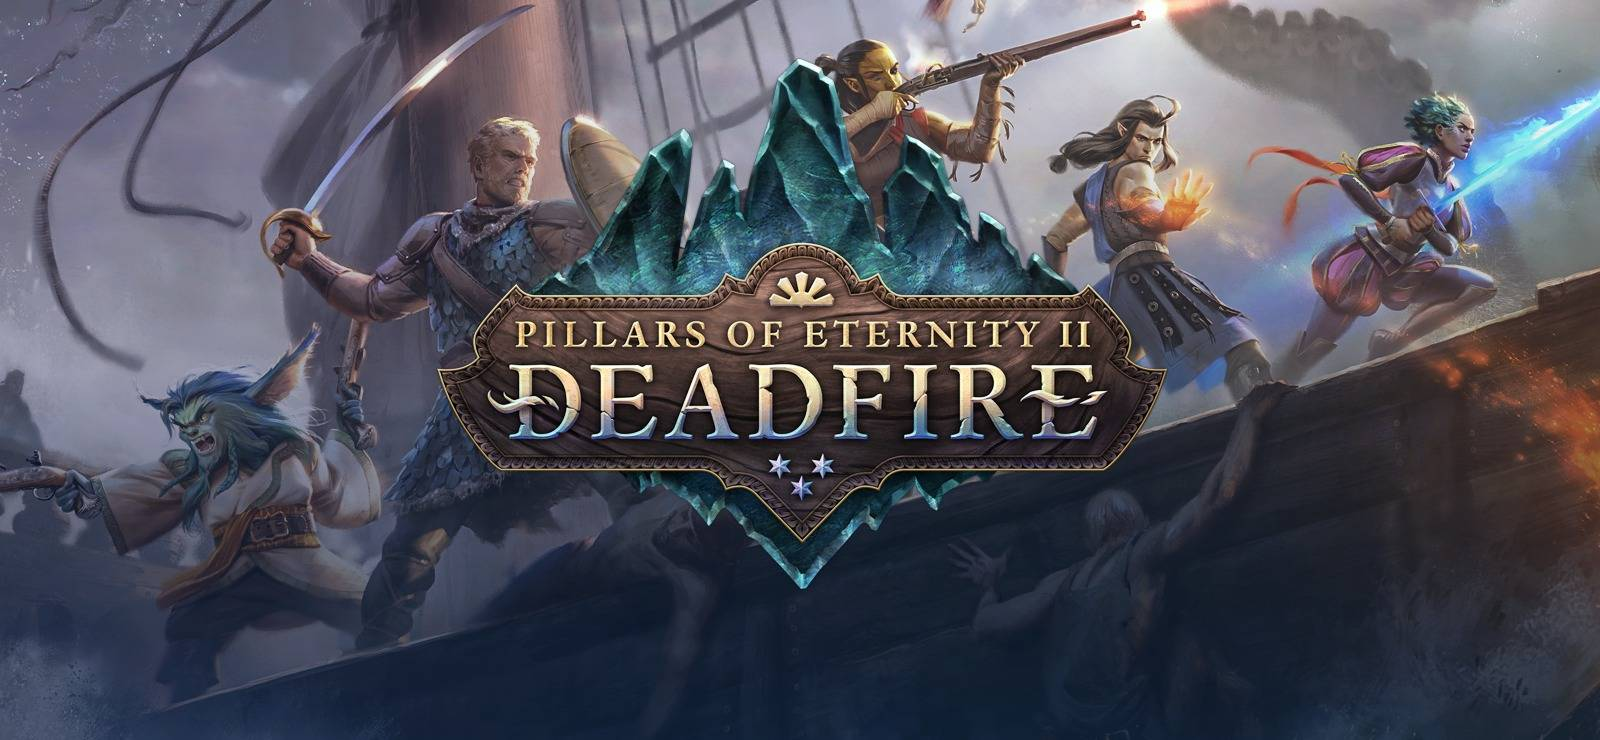 Pillars of Eternity II: Deadfire (2018)